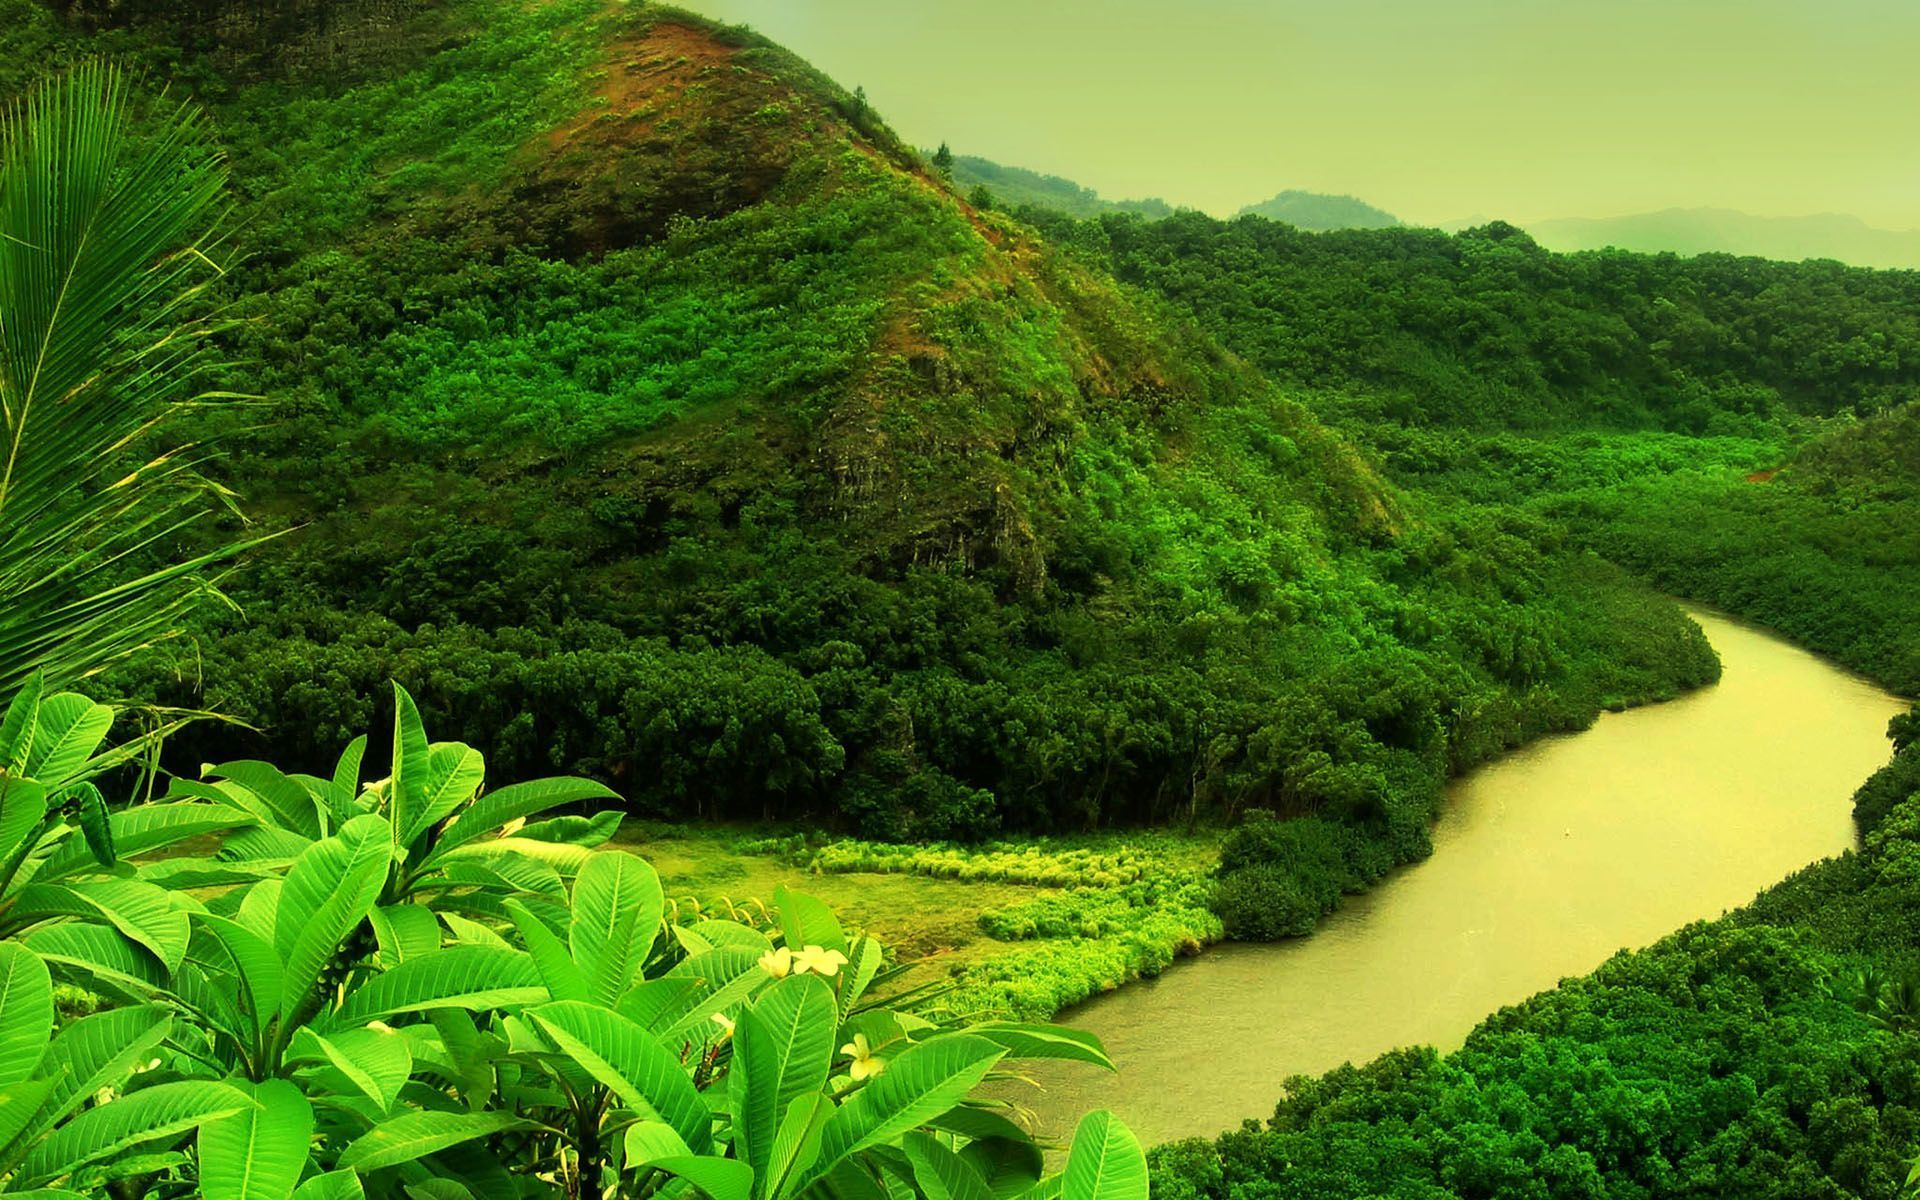 Let S Explore More Heaven On Earth 50 Landscape Hd Wallpapers Beautiful Nature Green Nature Beautiful Nature Wallpaper